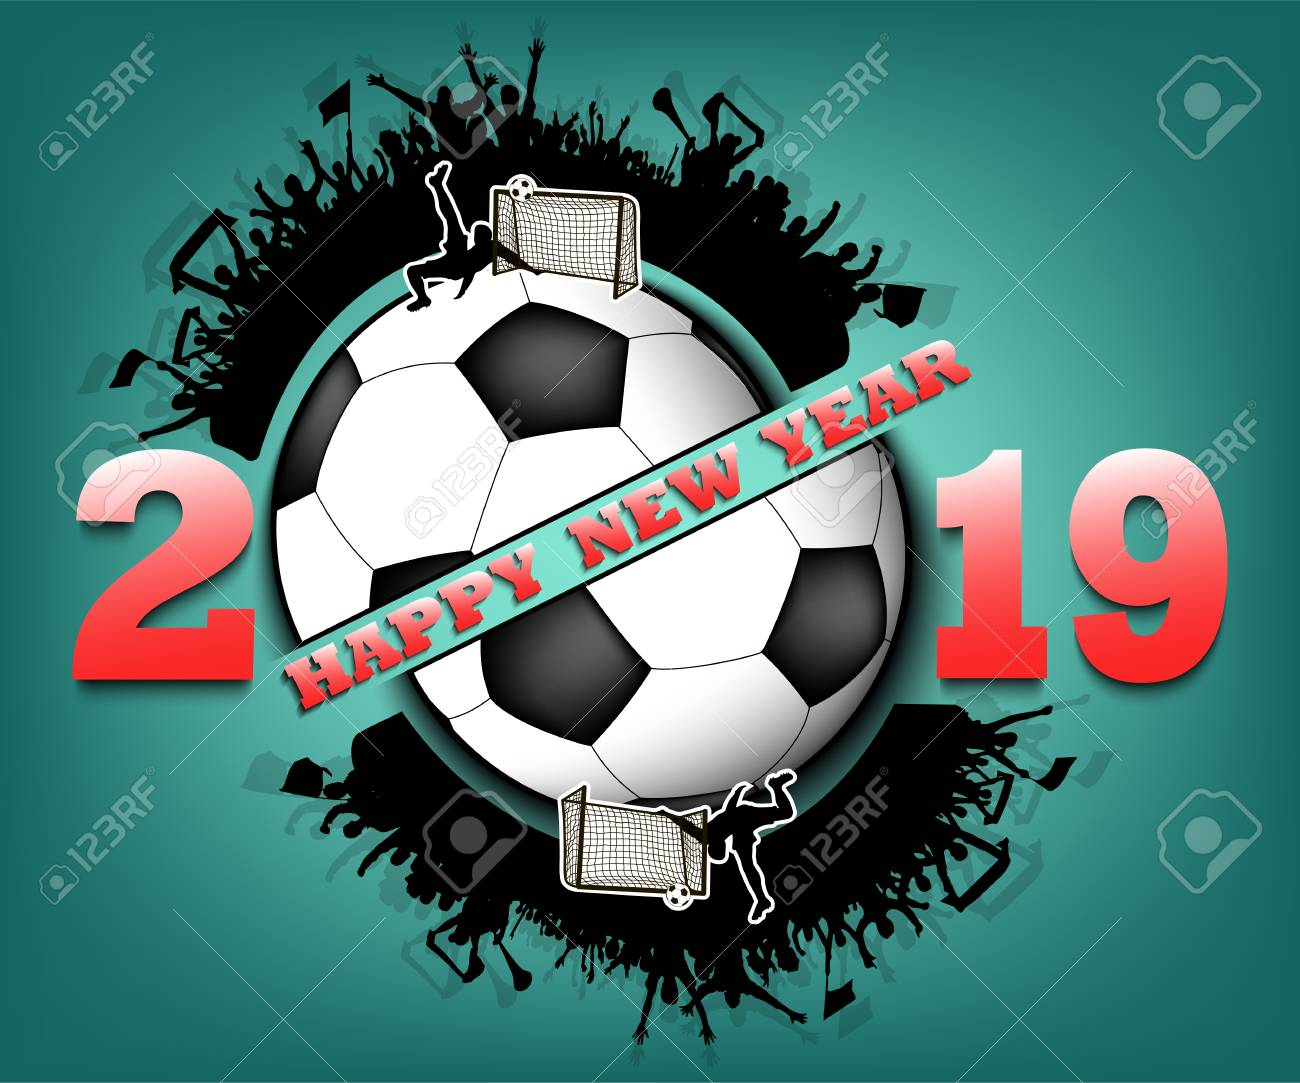 Happy New Year 2019 And Soccer Ball With Football Fans Creative